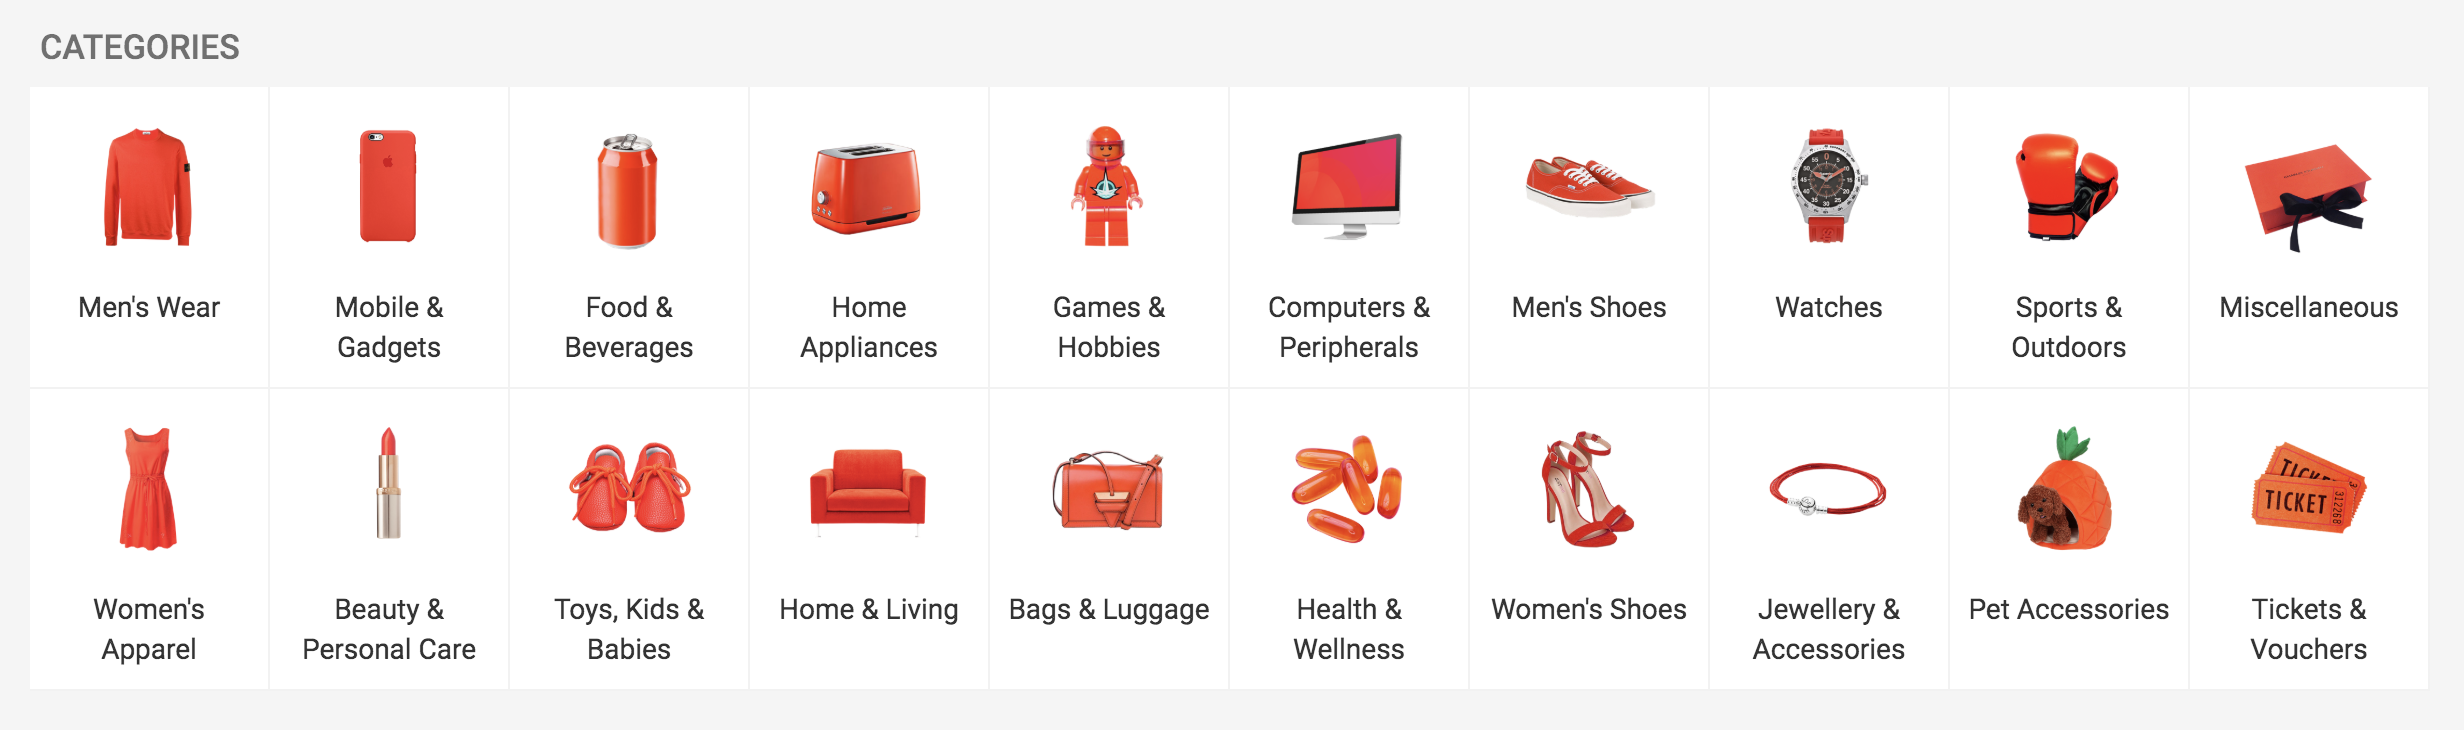 Shopee Product Categories